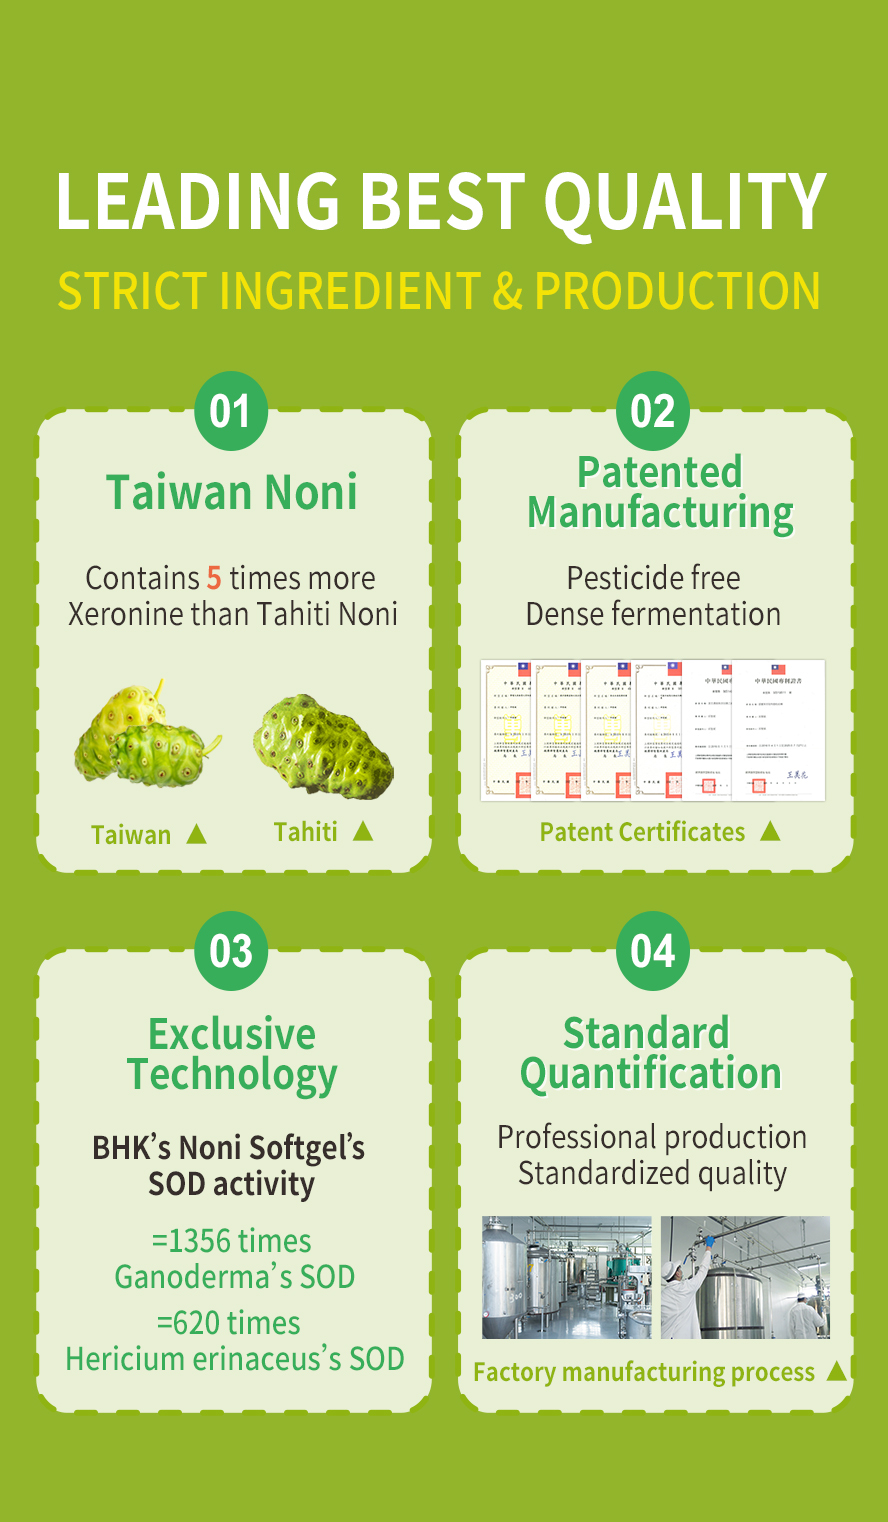 BHK's Noni is Taiwanese noni, it's very good variety.